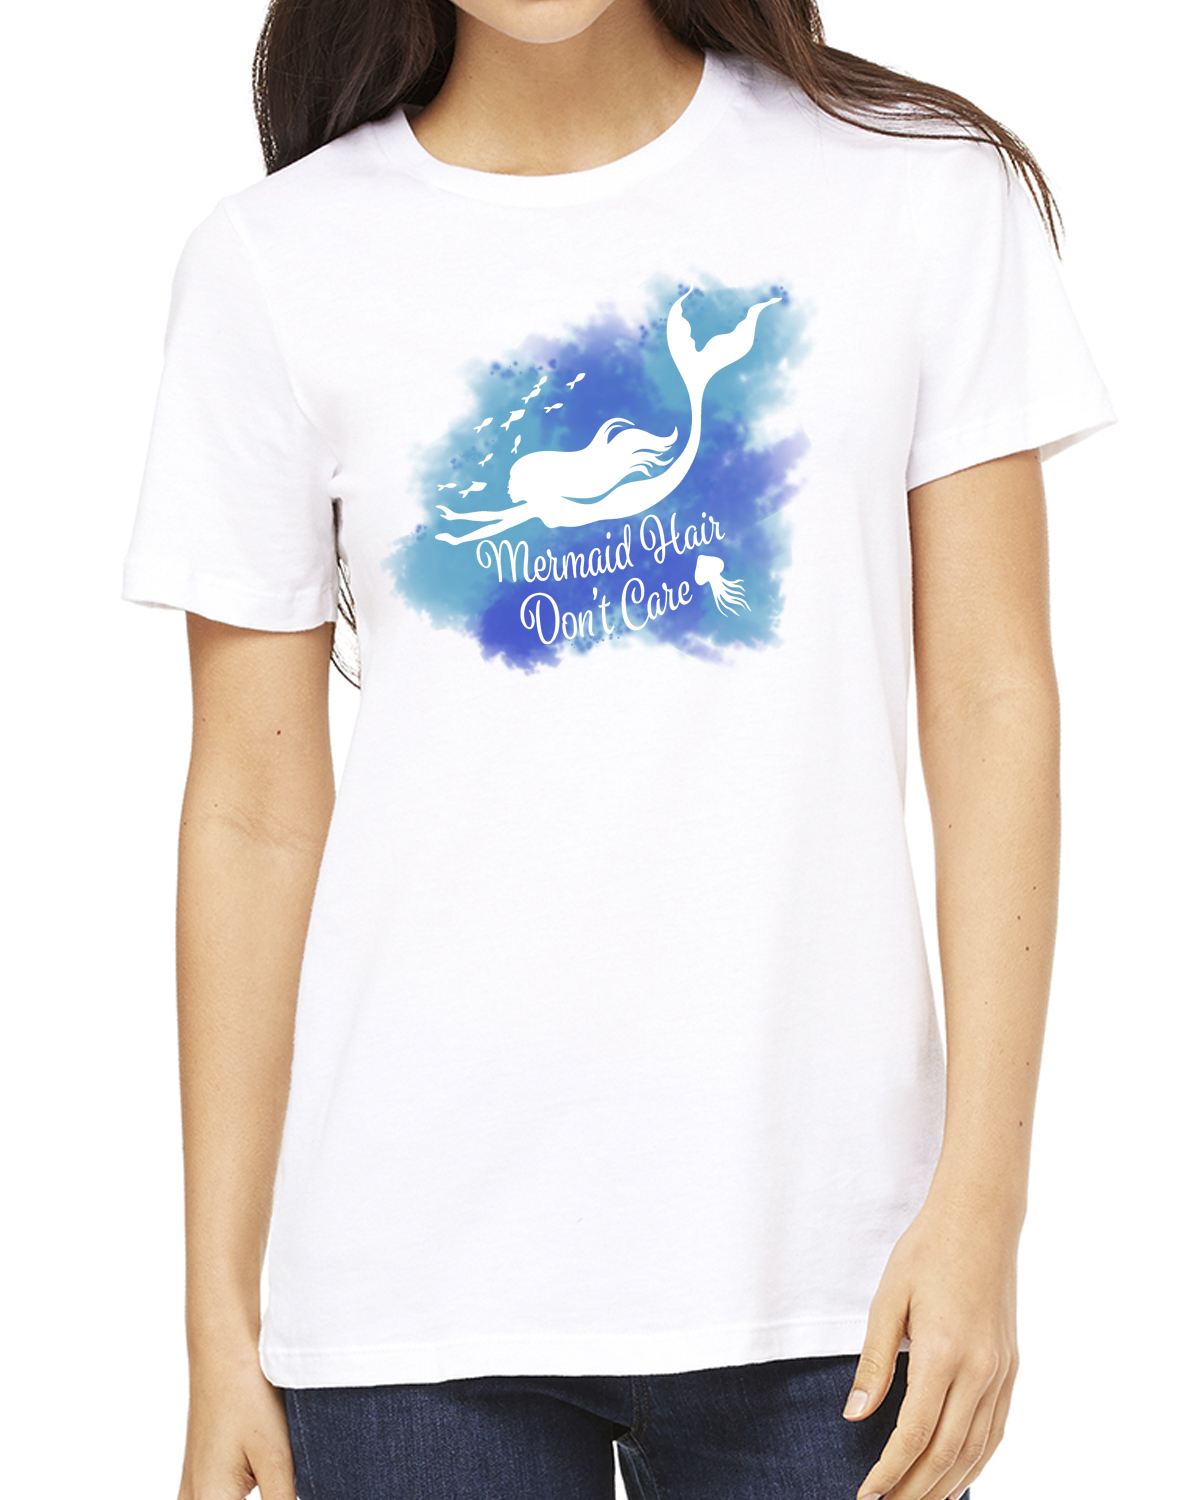 Mermaid Hair, Don't Care Women's short sleeve t-shirt (White)